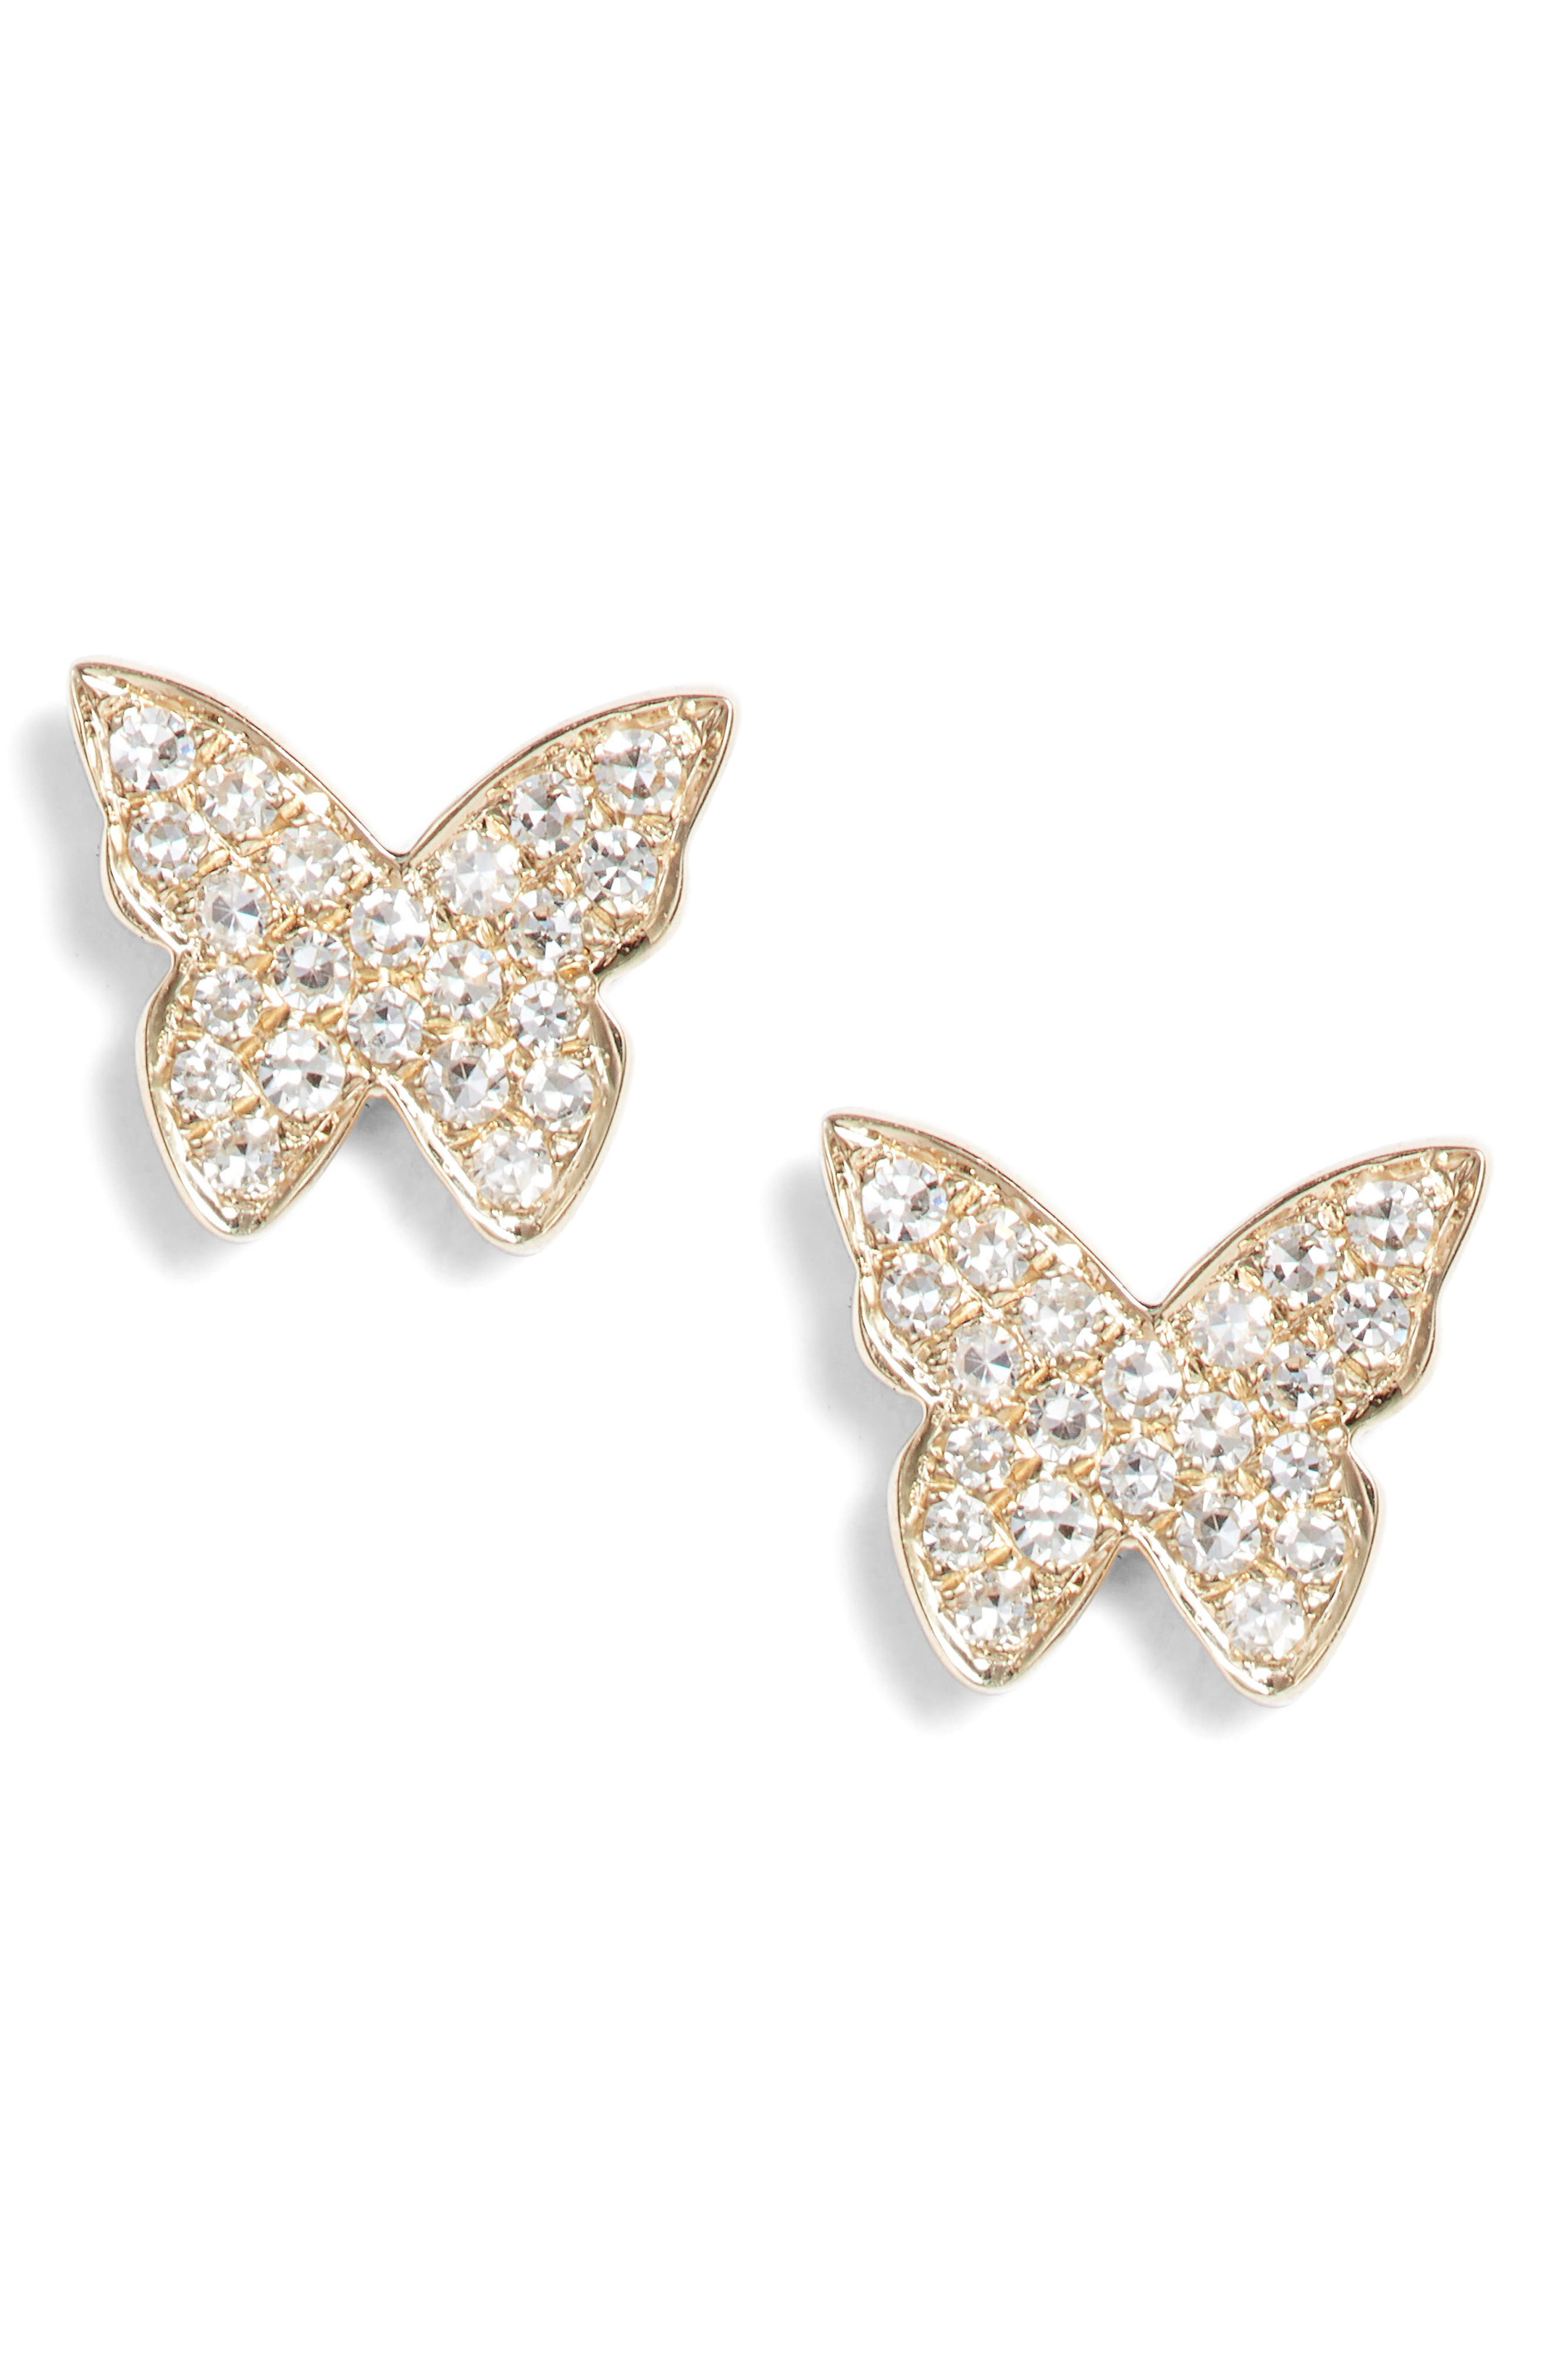 Butterfly Diamond Stud Earrings,                             Main thumbnail 1, color,                             YELLOW GOLD